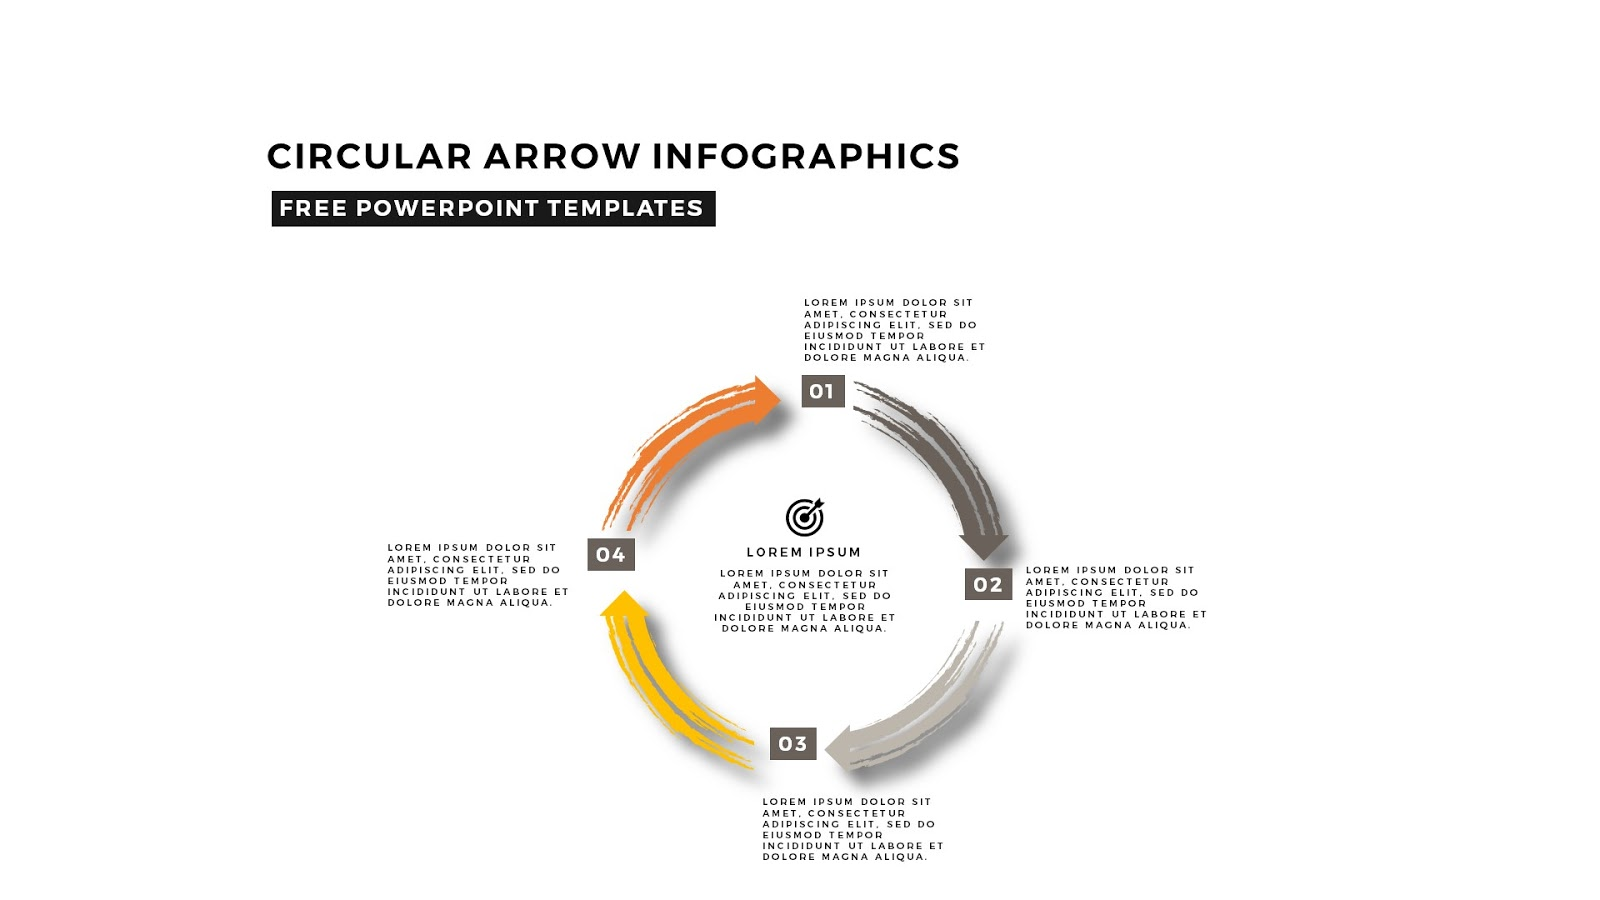 Circular Brush Stroke and Arrow Infographics for Free